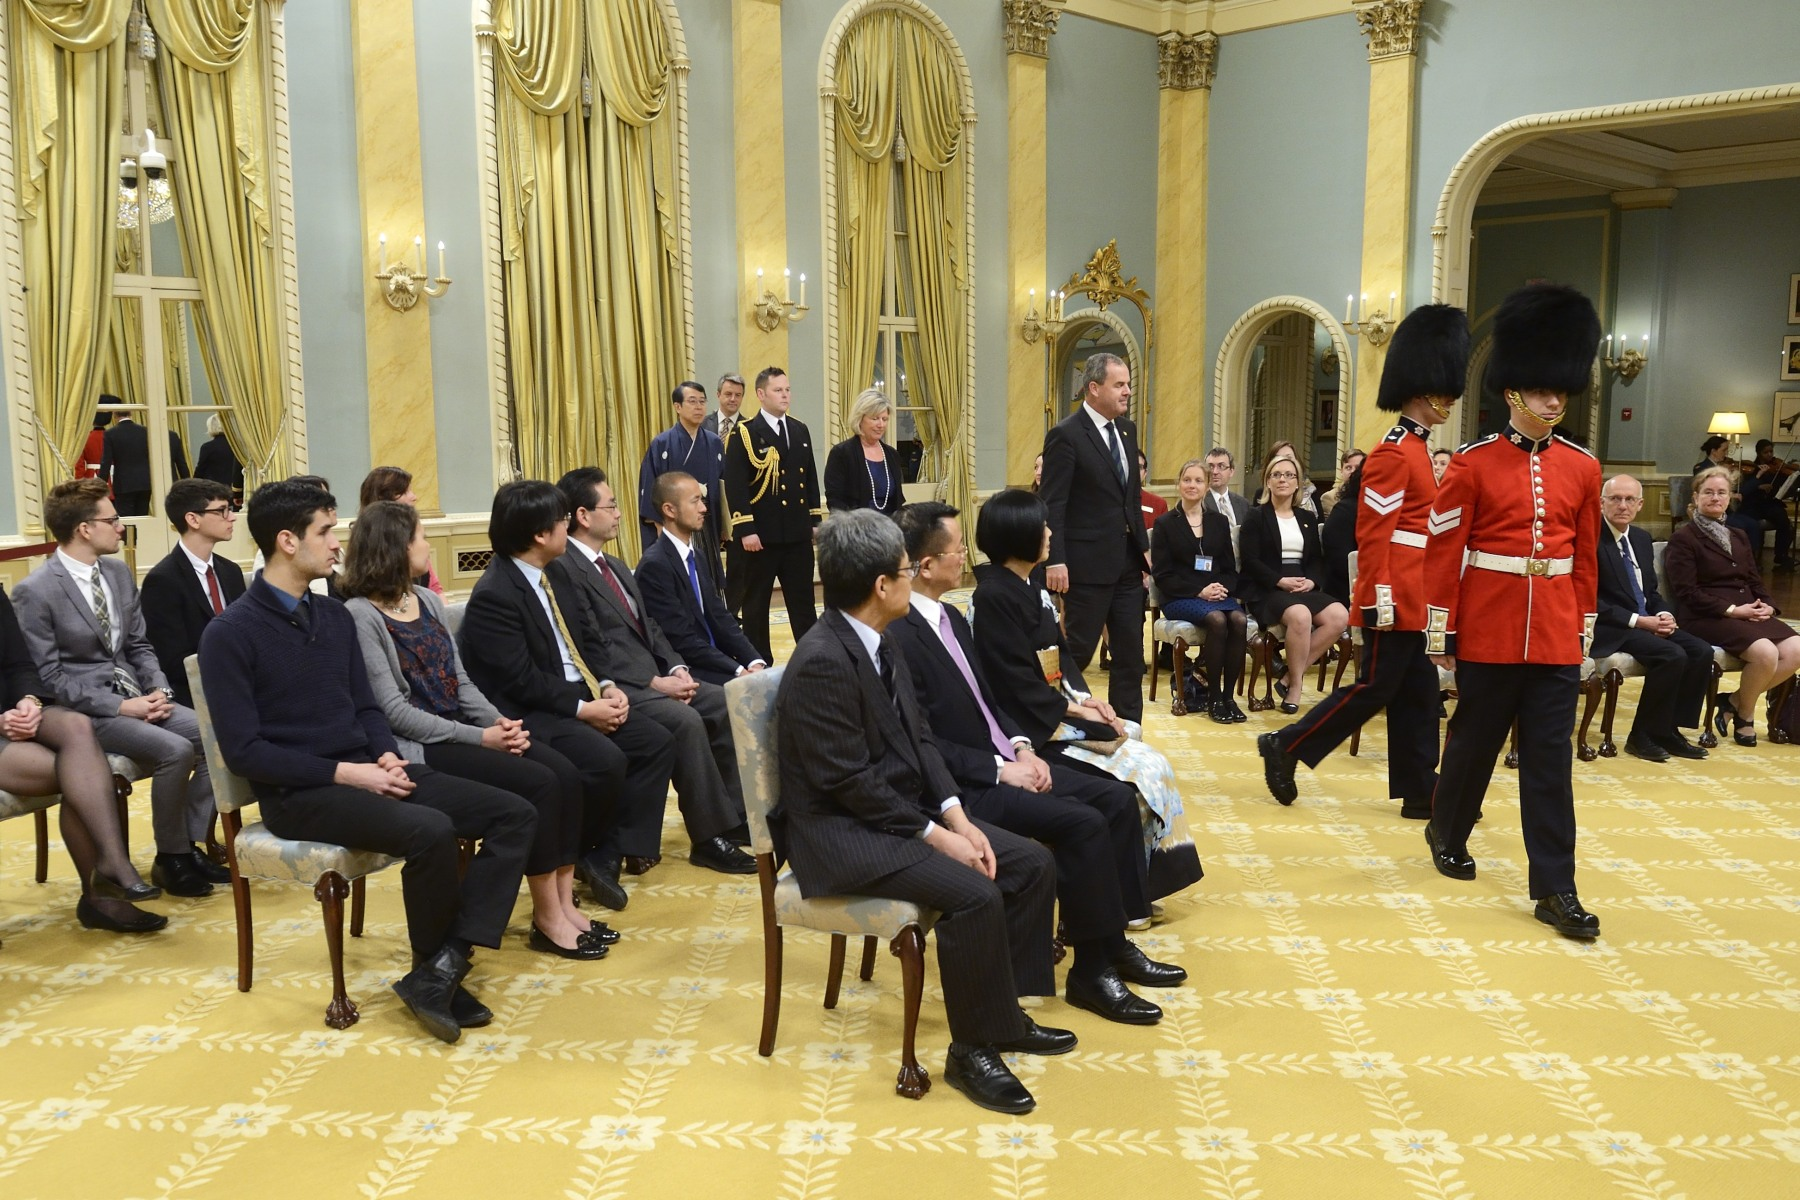 On April 23, 2015, the Governor General welcomed to Canada two new heads of mission from Macedonia and Japan.